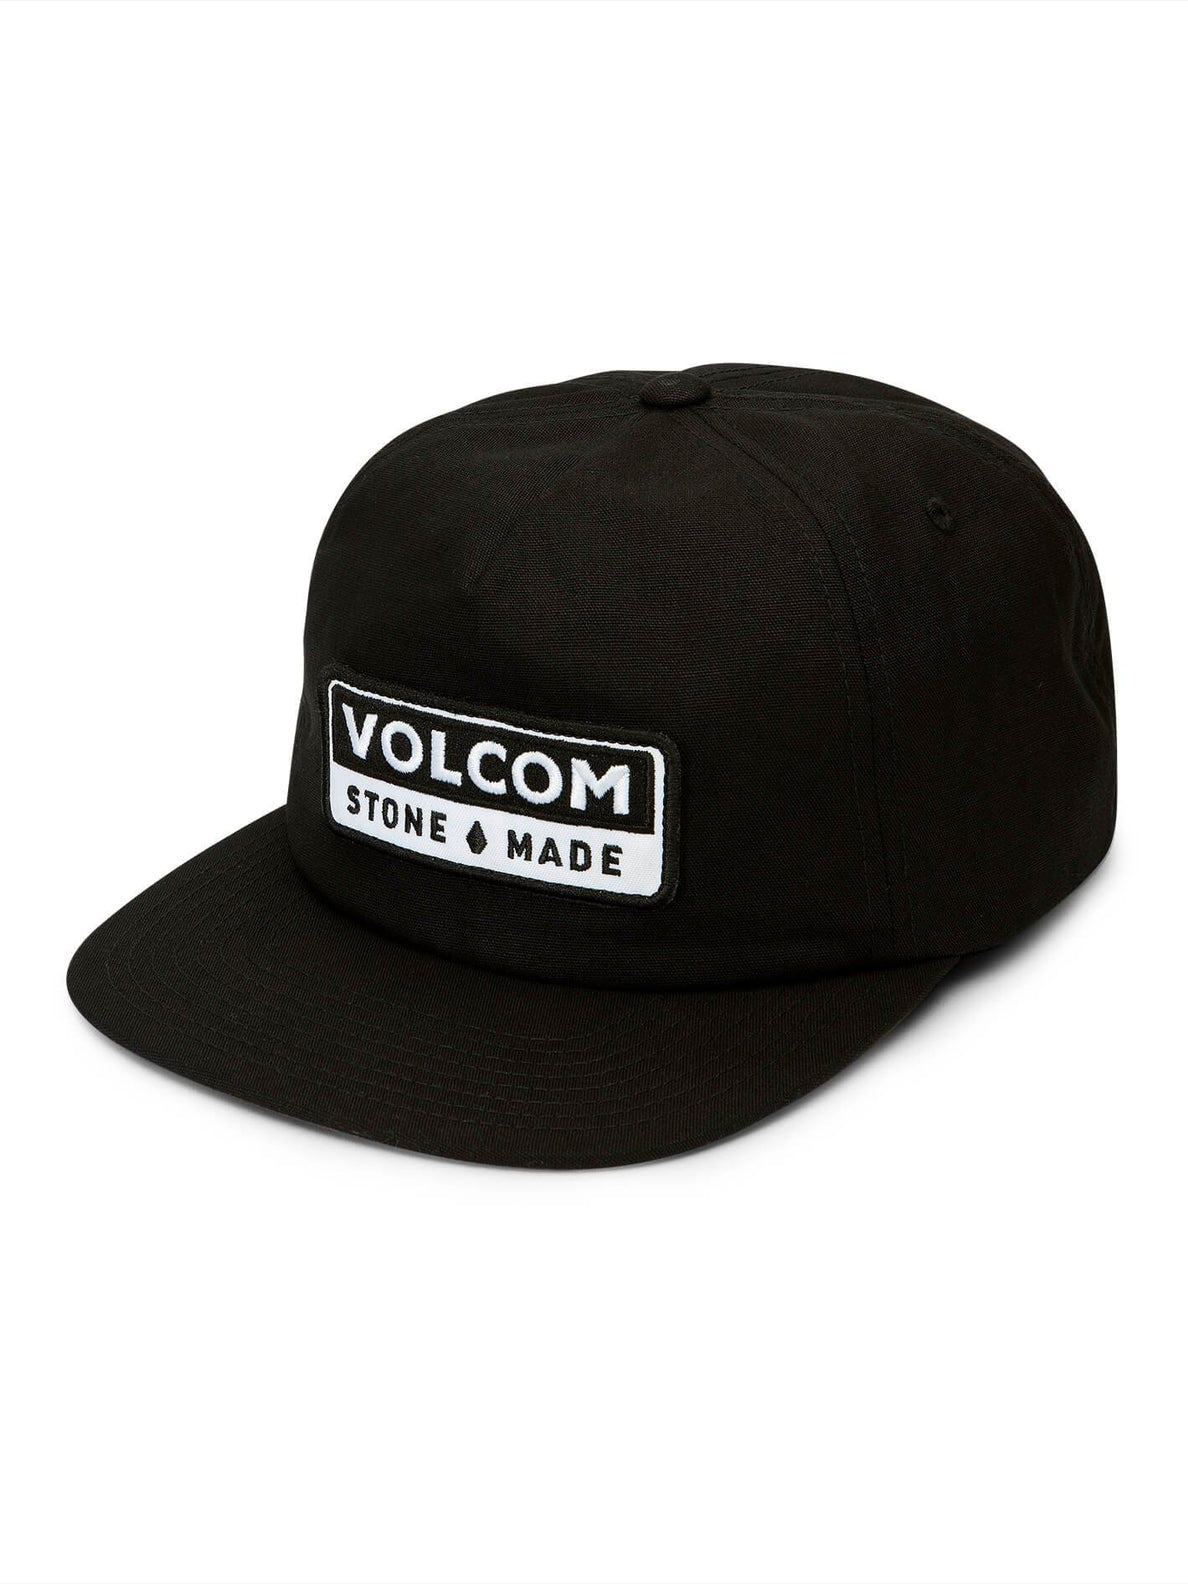 Transporter Hat In Black, Front View